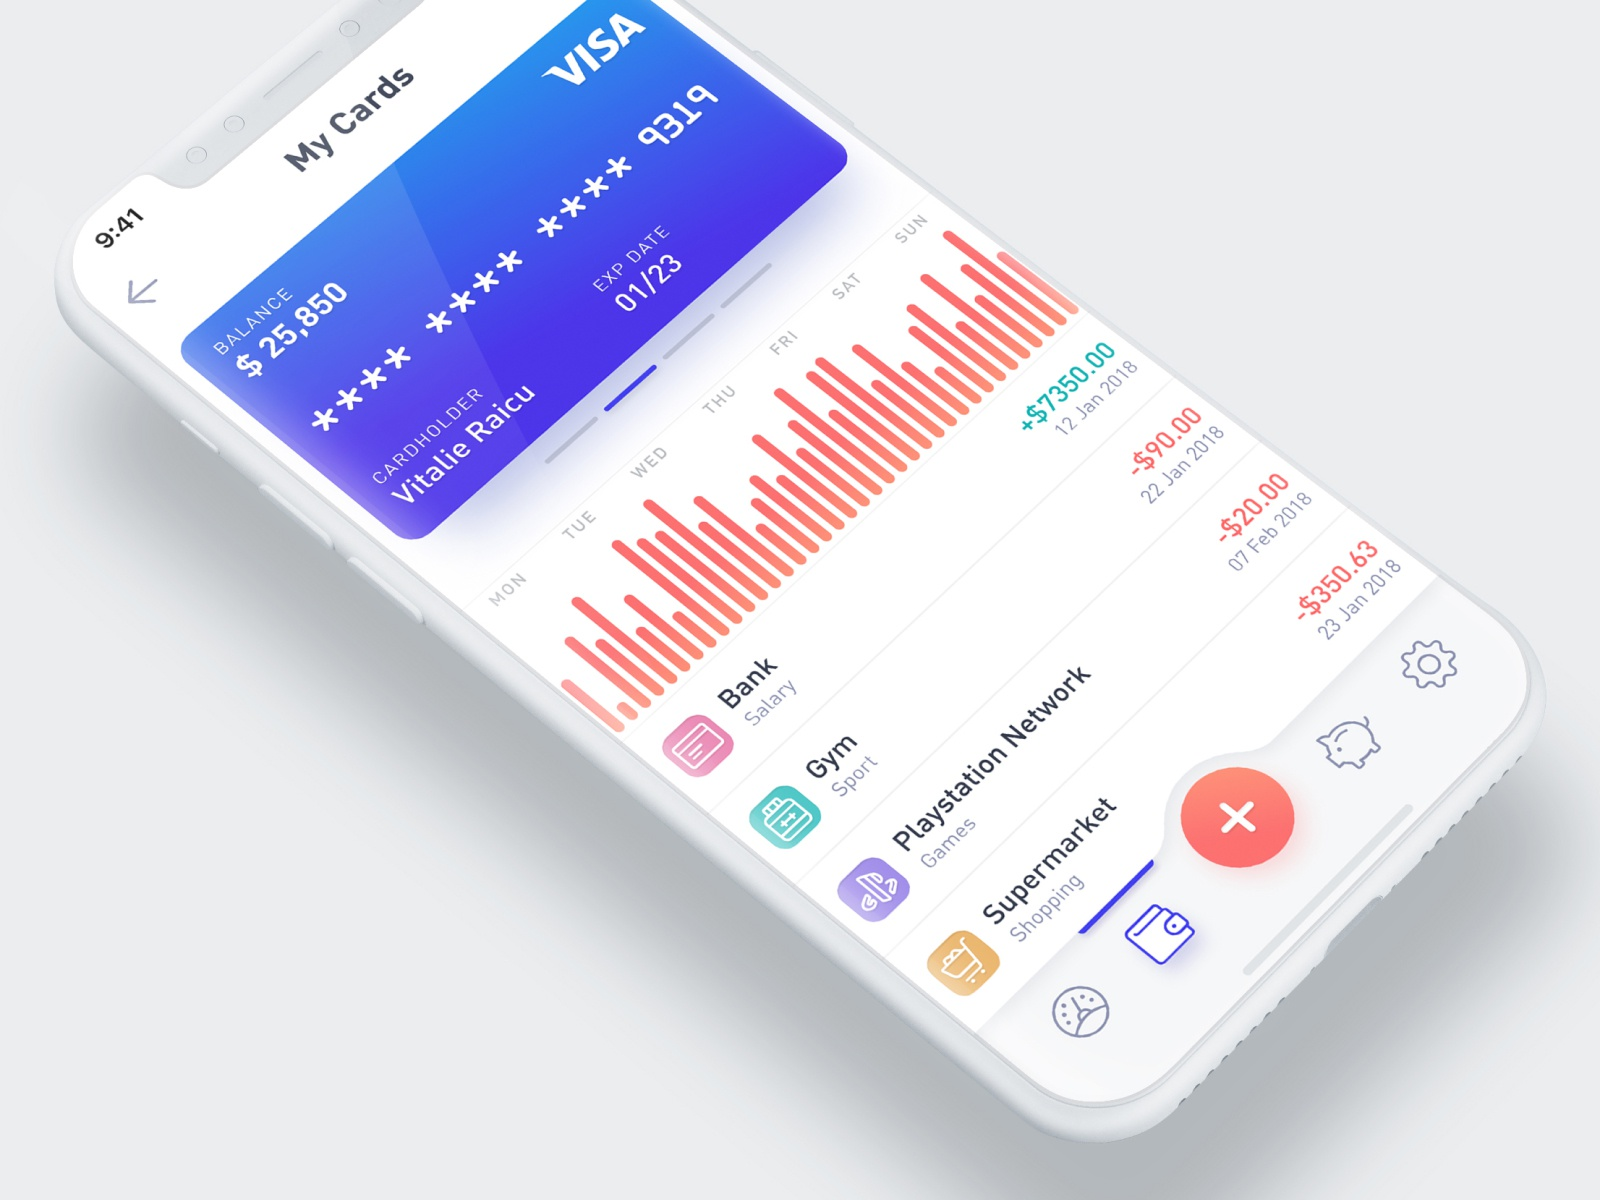 Mobile Wallet UI interface mobile app mobile analytics reports dashboard user interface ui